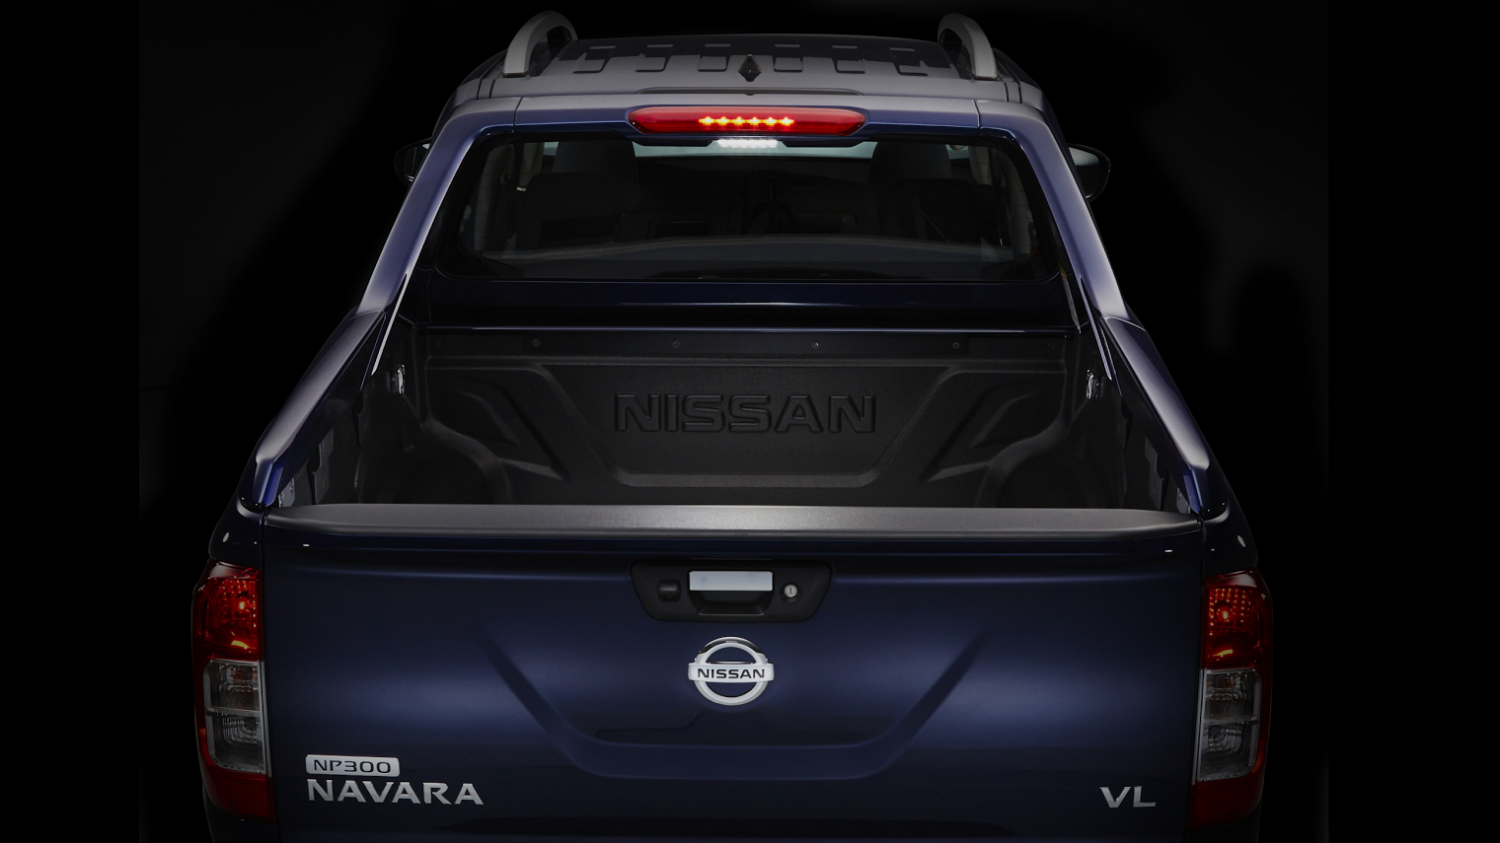 navara sport edition dead rear